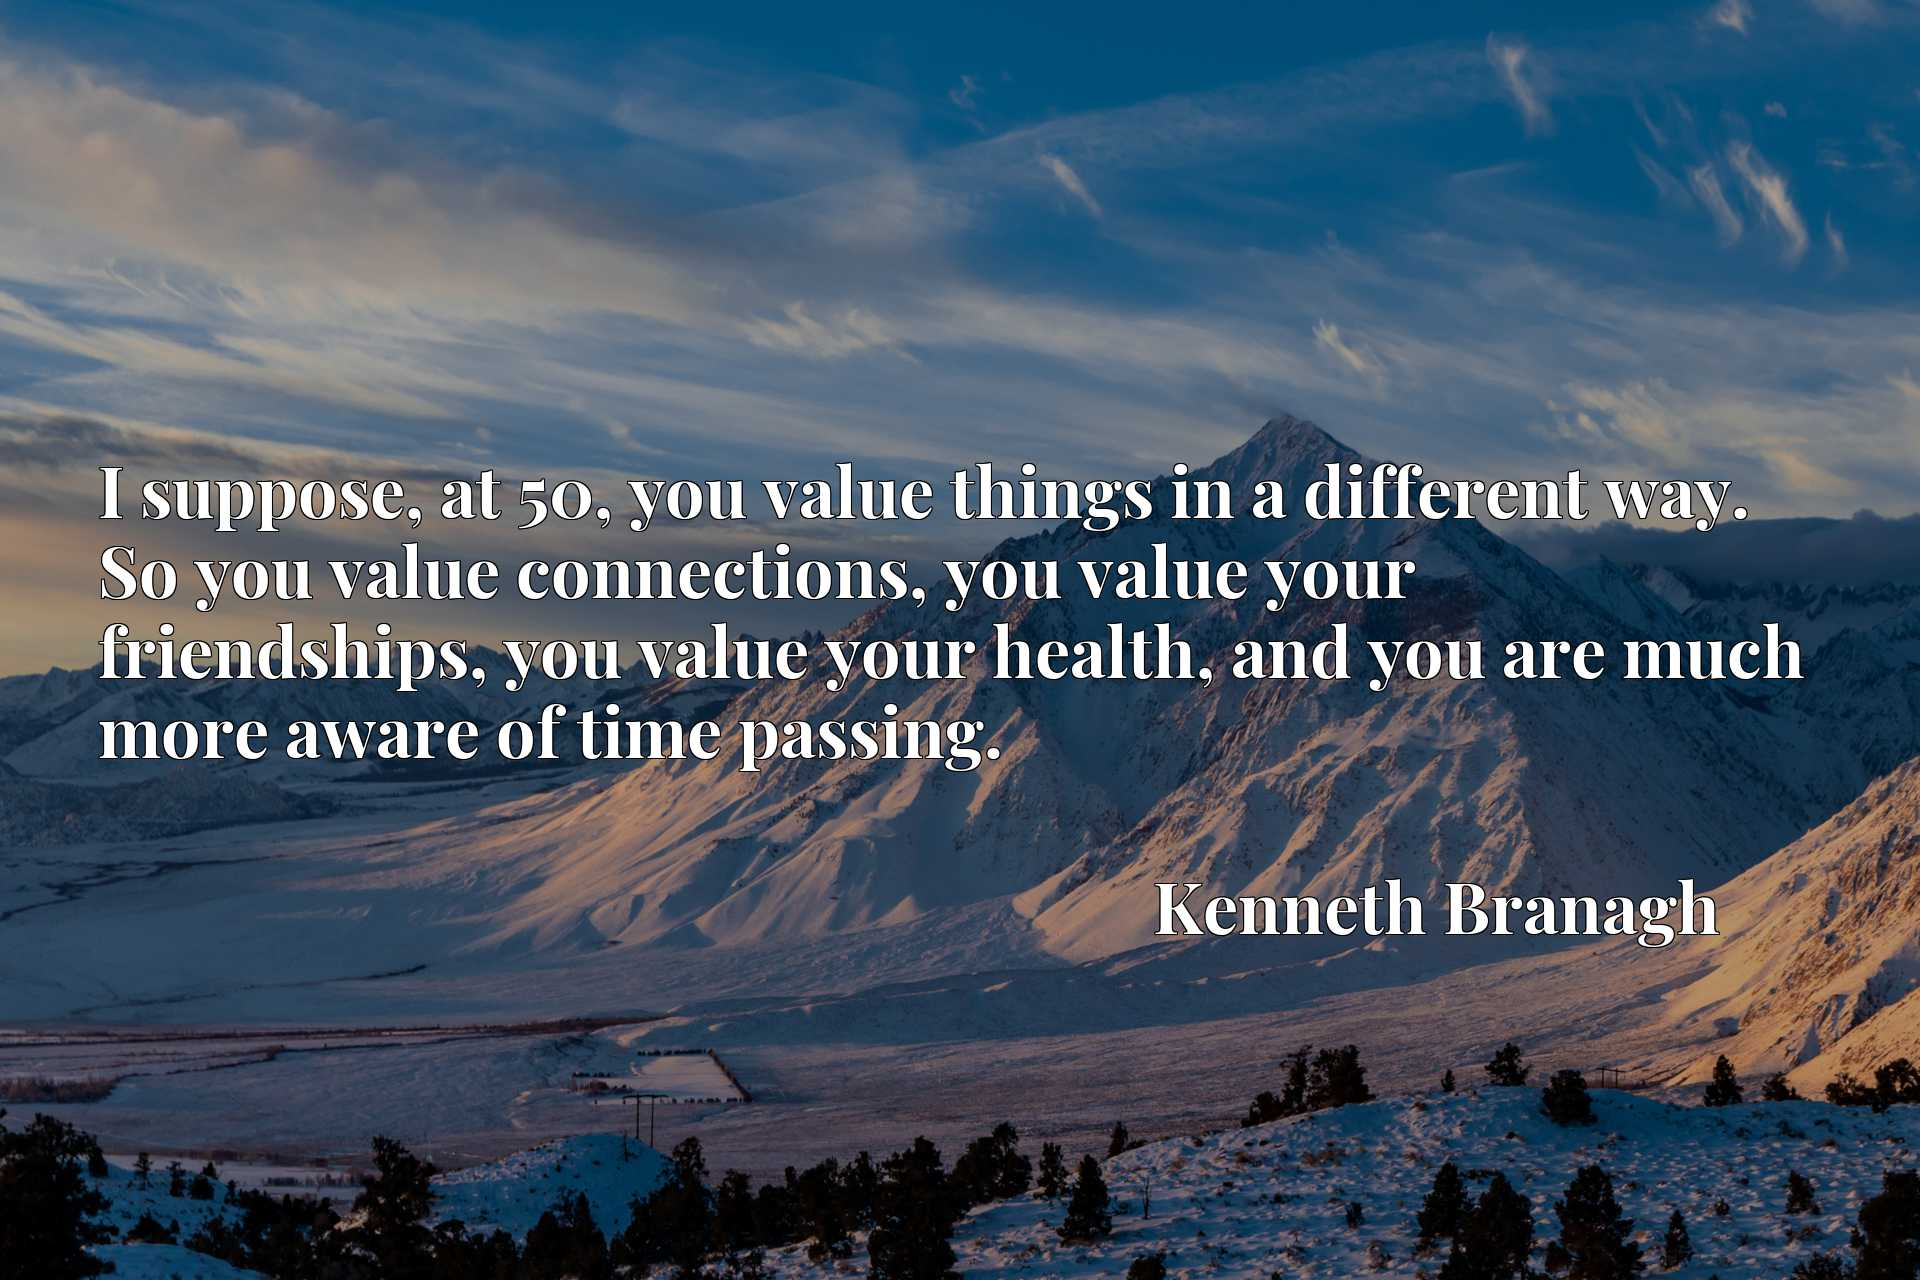 I suppose, at 50, you value things in a different way. So you value connections, you value your friendships, you value your health, and you are much more aware of time passing.